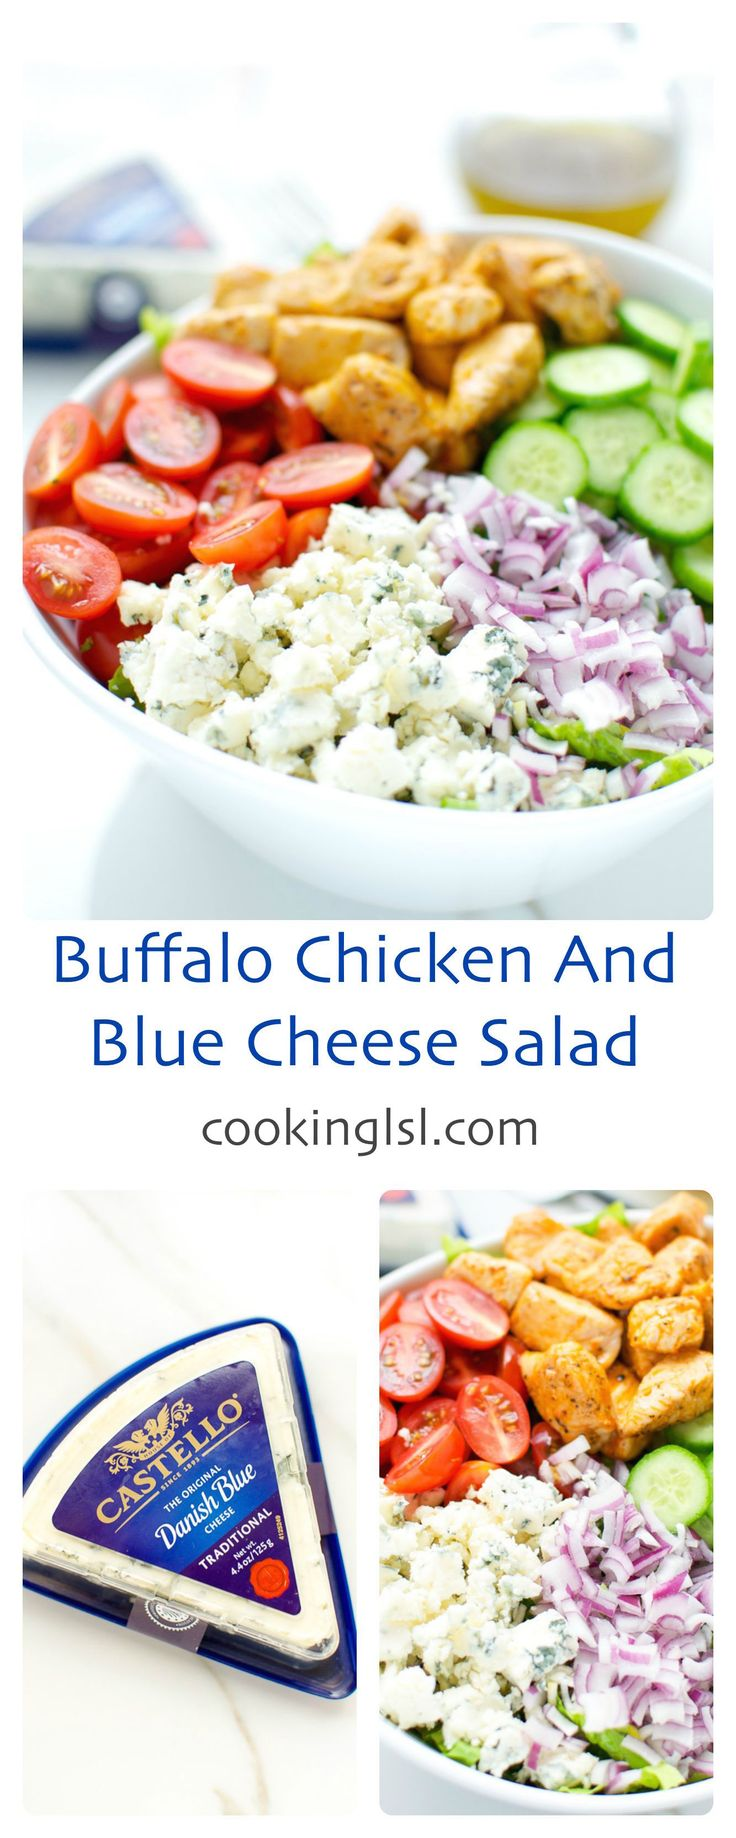 Buffalo Chicken Thighs With Celery And Blue Cheese Salad Recipe ...